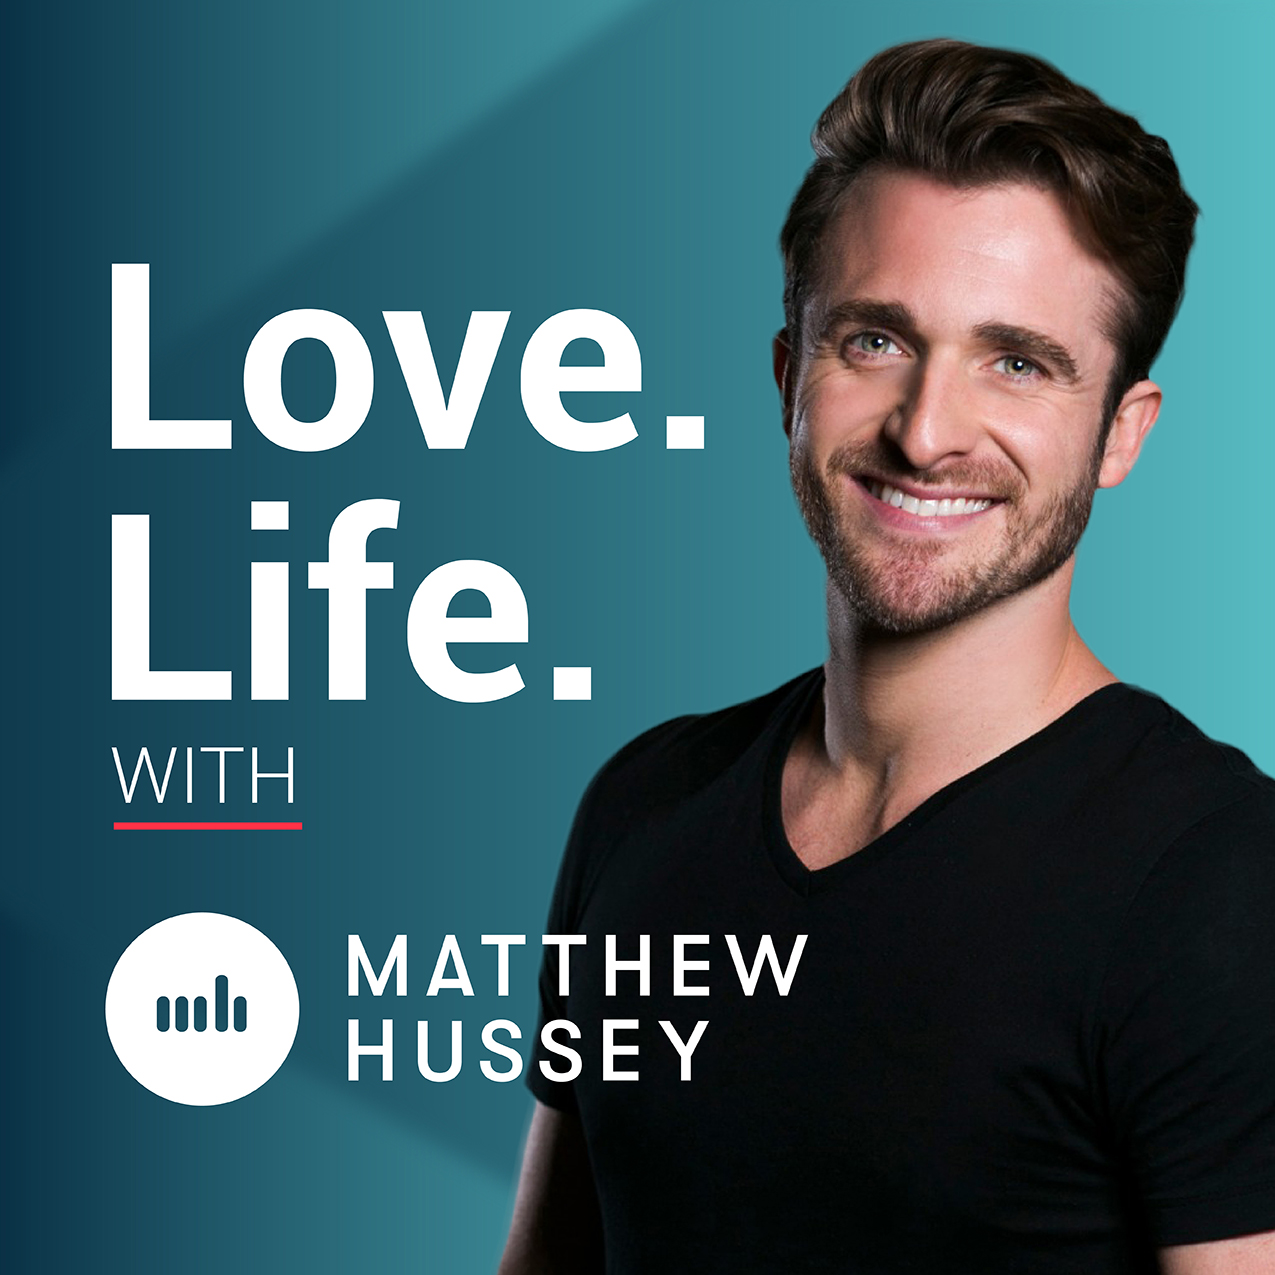 2021 Half-Time Talk With Matt and Stephen (relationships after covid, dating apps, body confidence, and MORE)